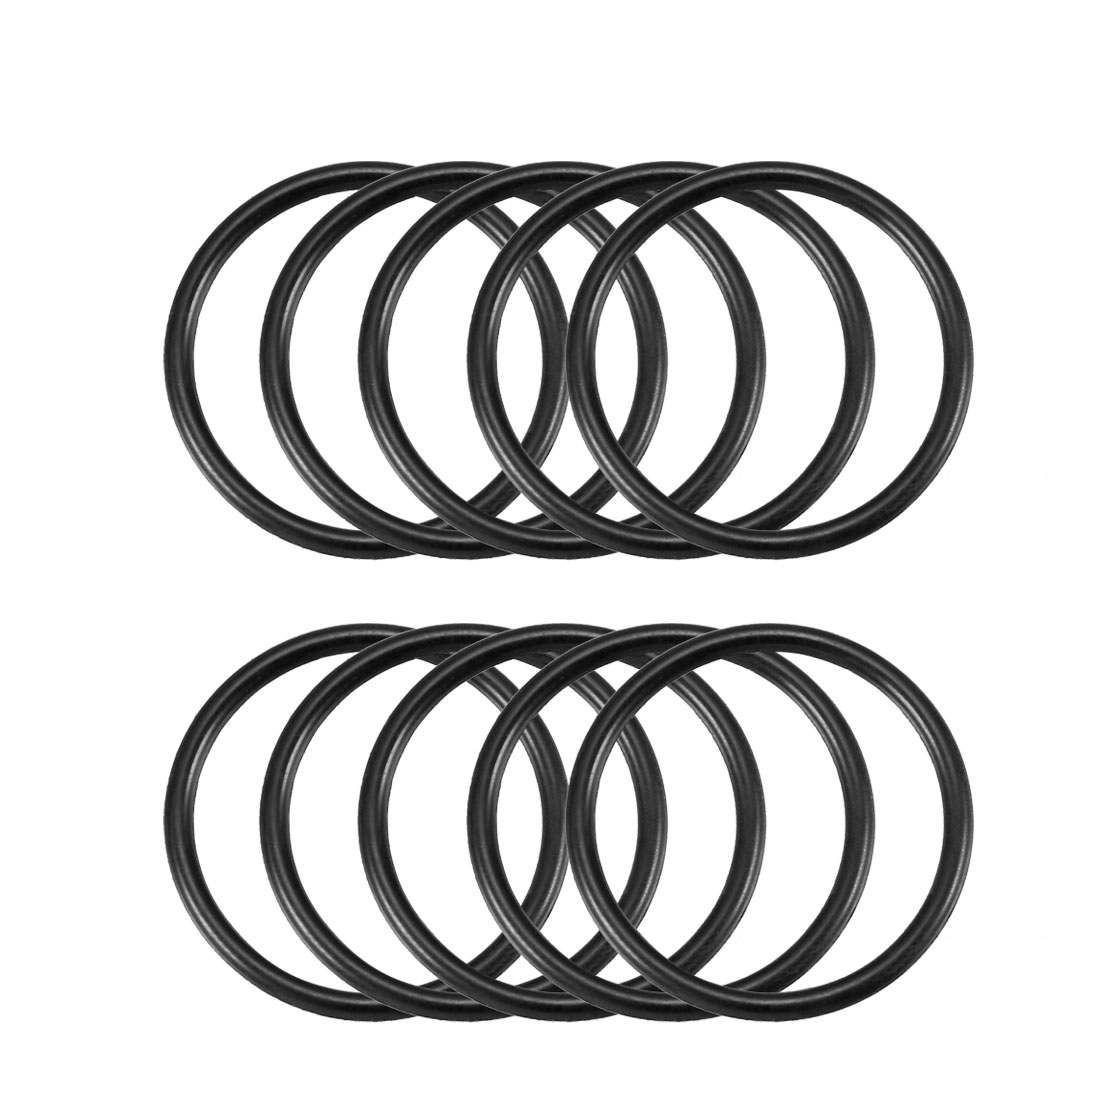 10 Pcs 26mm x 2mm Industrial Flexible Rubber O Ring Seal Washer